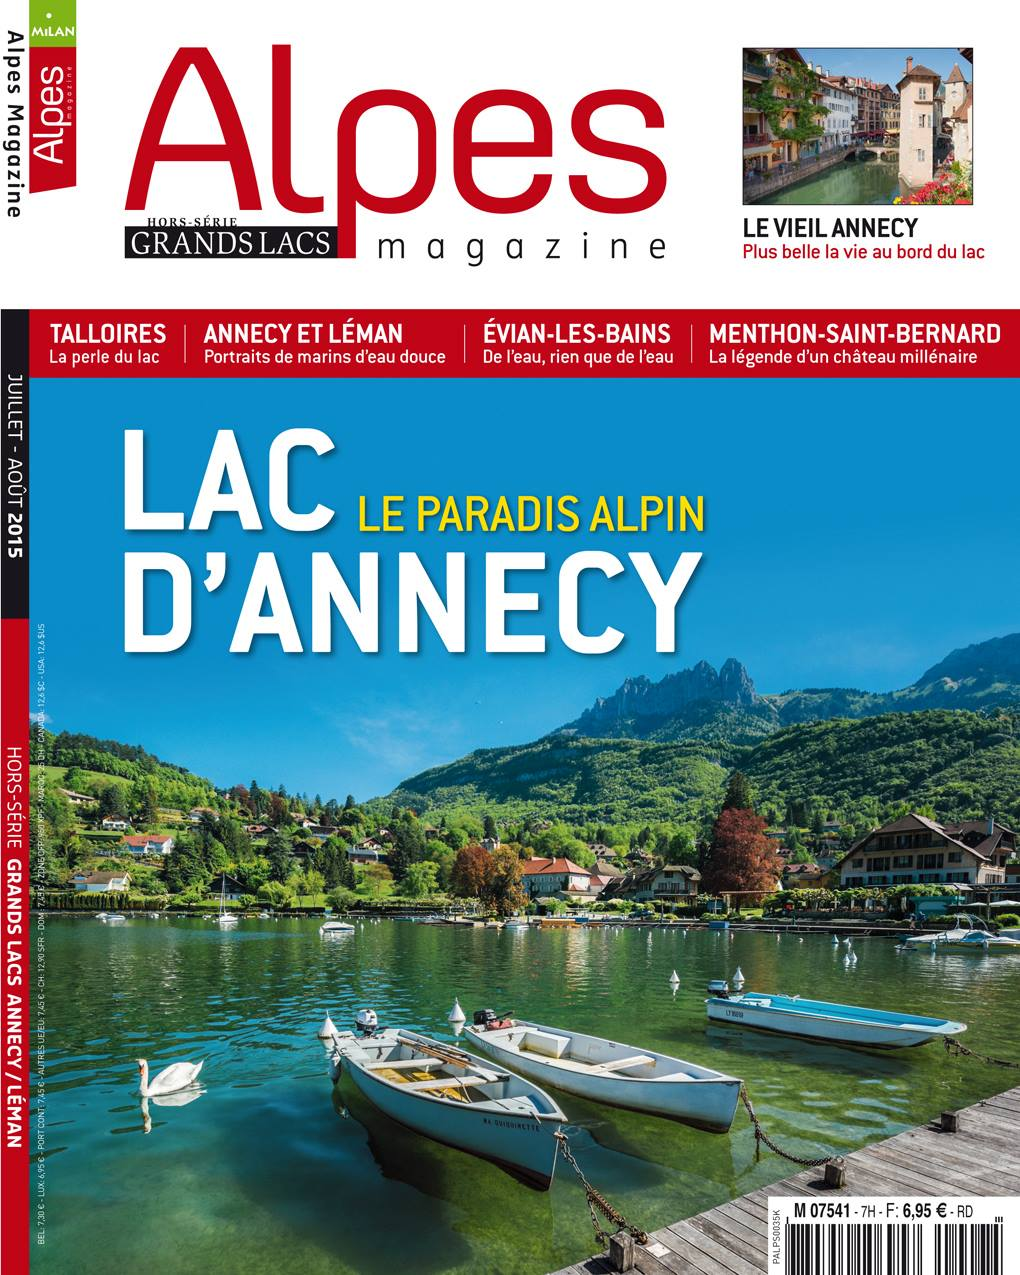 Alpes-Magazine - Talloires - Marc Daviet Photography